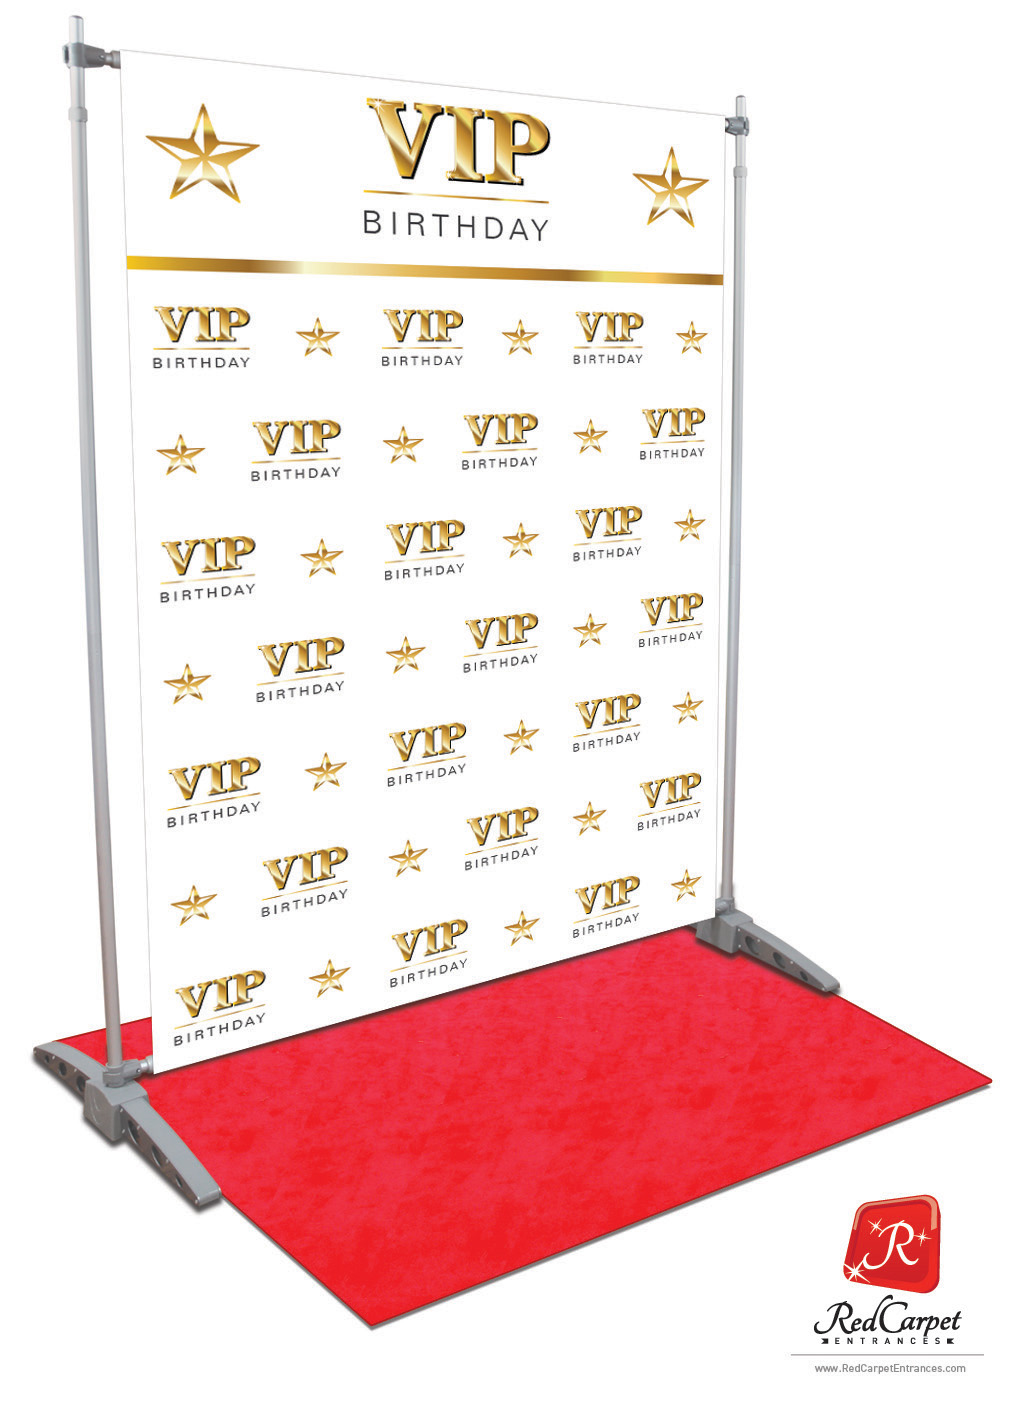 Vip Birthday Backdrop White 5x8 Red Carpet Runner Red Carpet Backdrop Event Shop